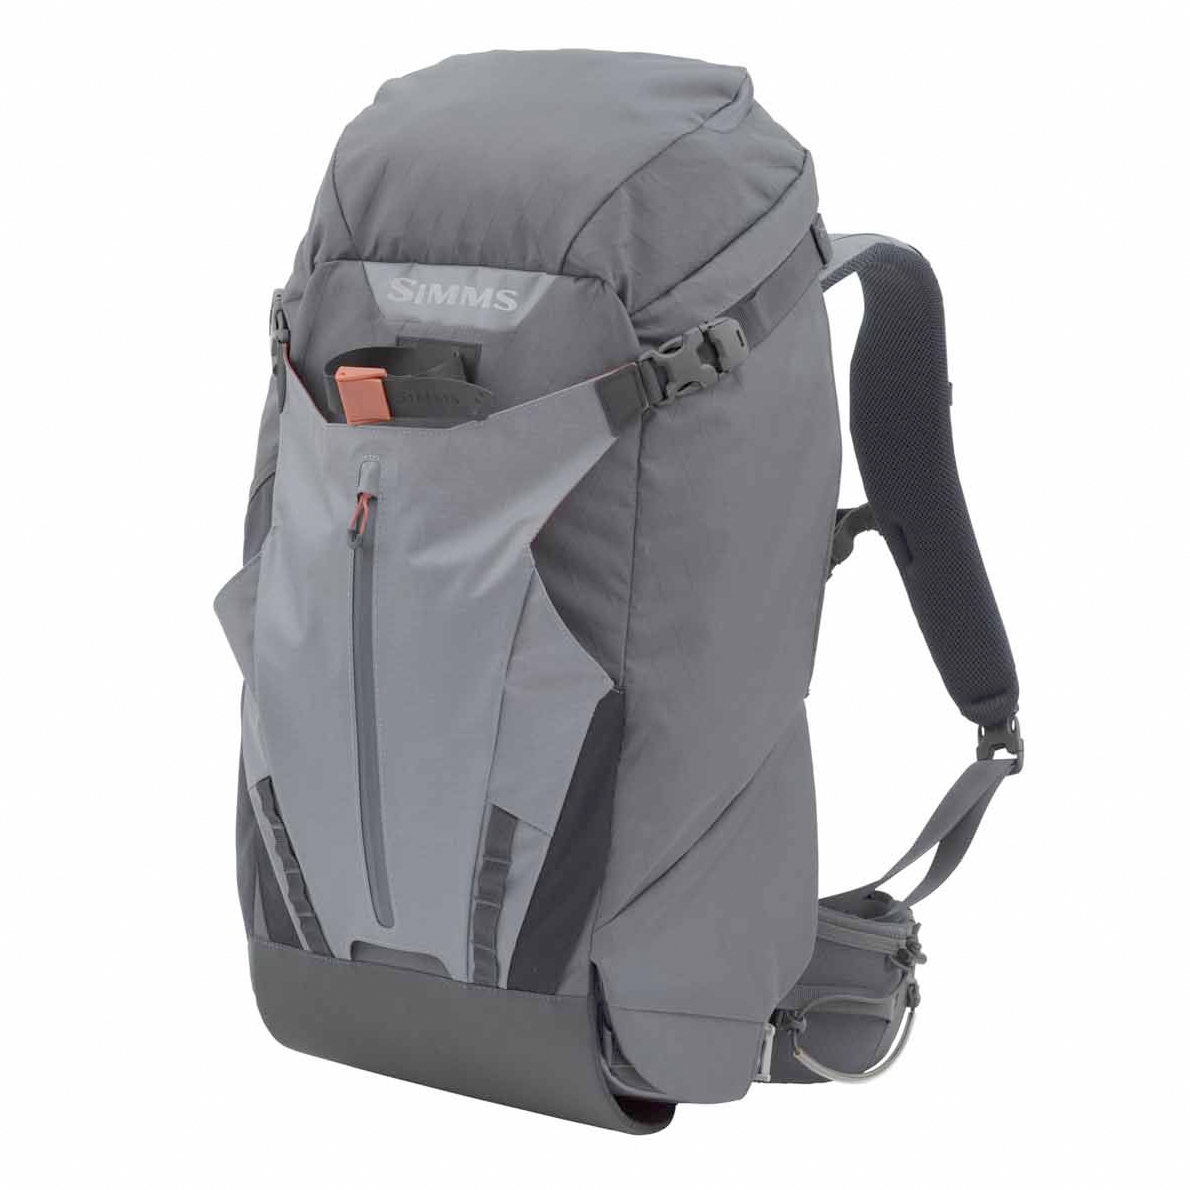 G4 Pro Shift Fishing Backpack 2020